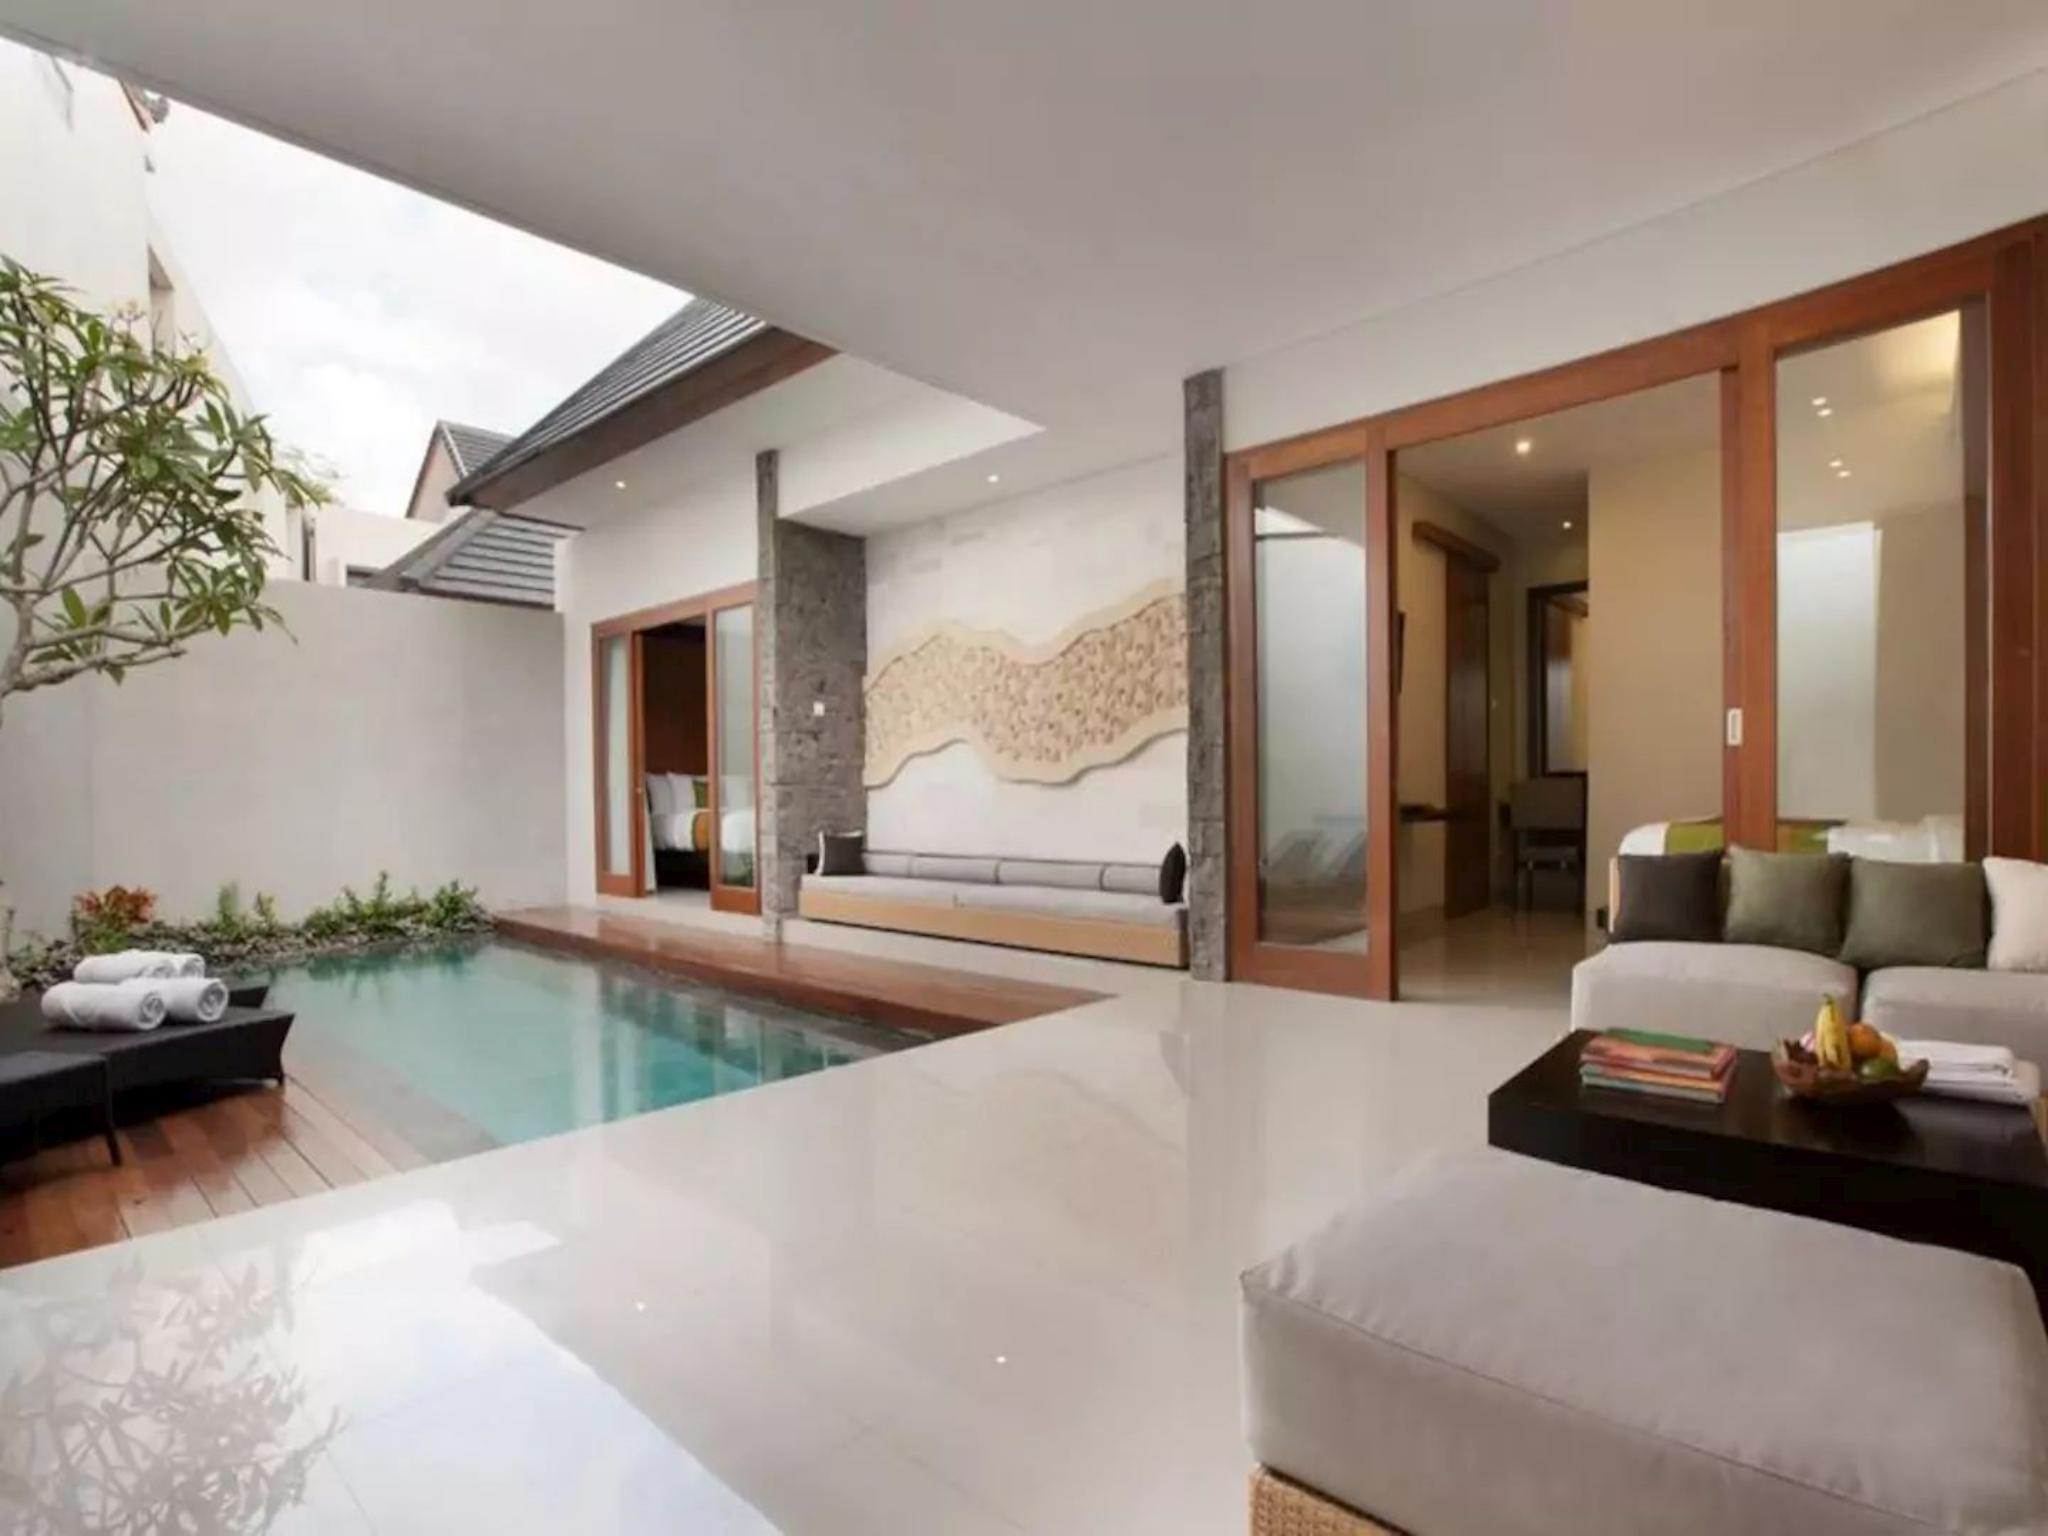 2 BDR Villas with Private Pool in Seminyak Area